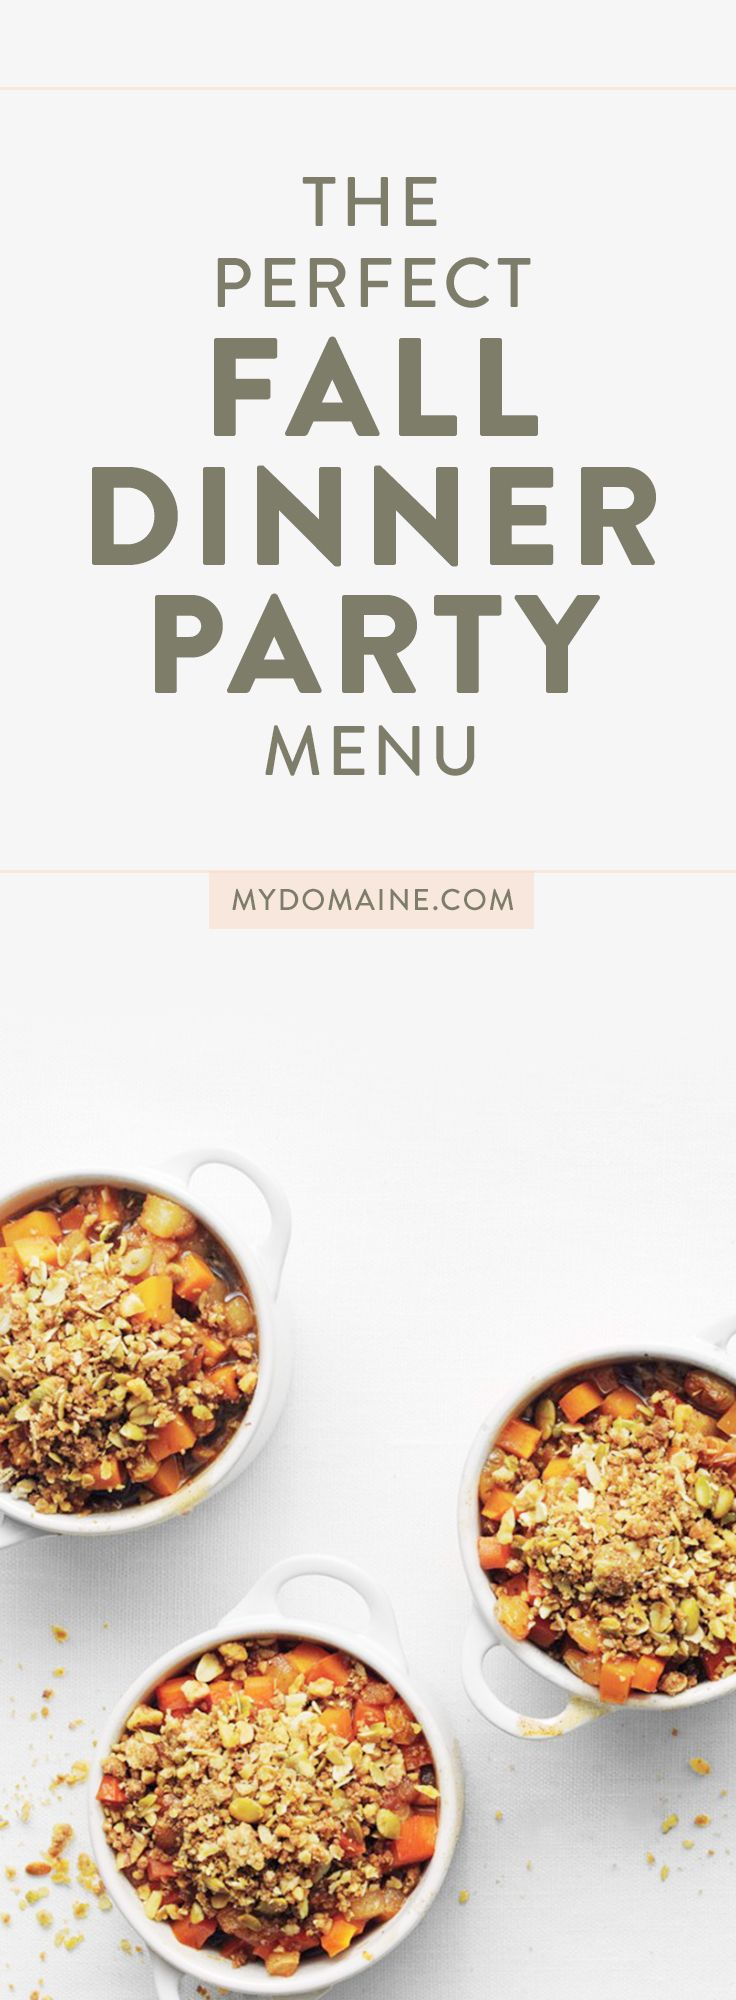 Fall Dinner Party Menu Suggestions Part - 41: This Fall Dinner Party Menu Is Mouthwateringly Delicious